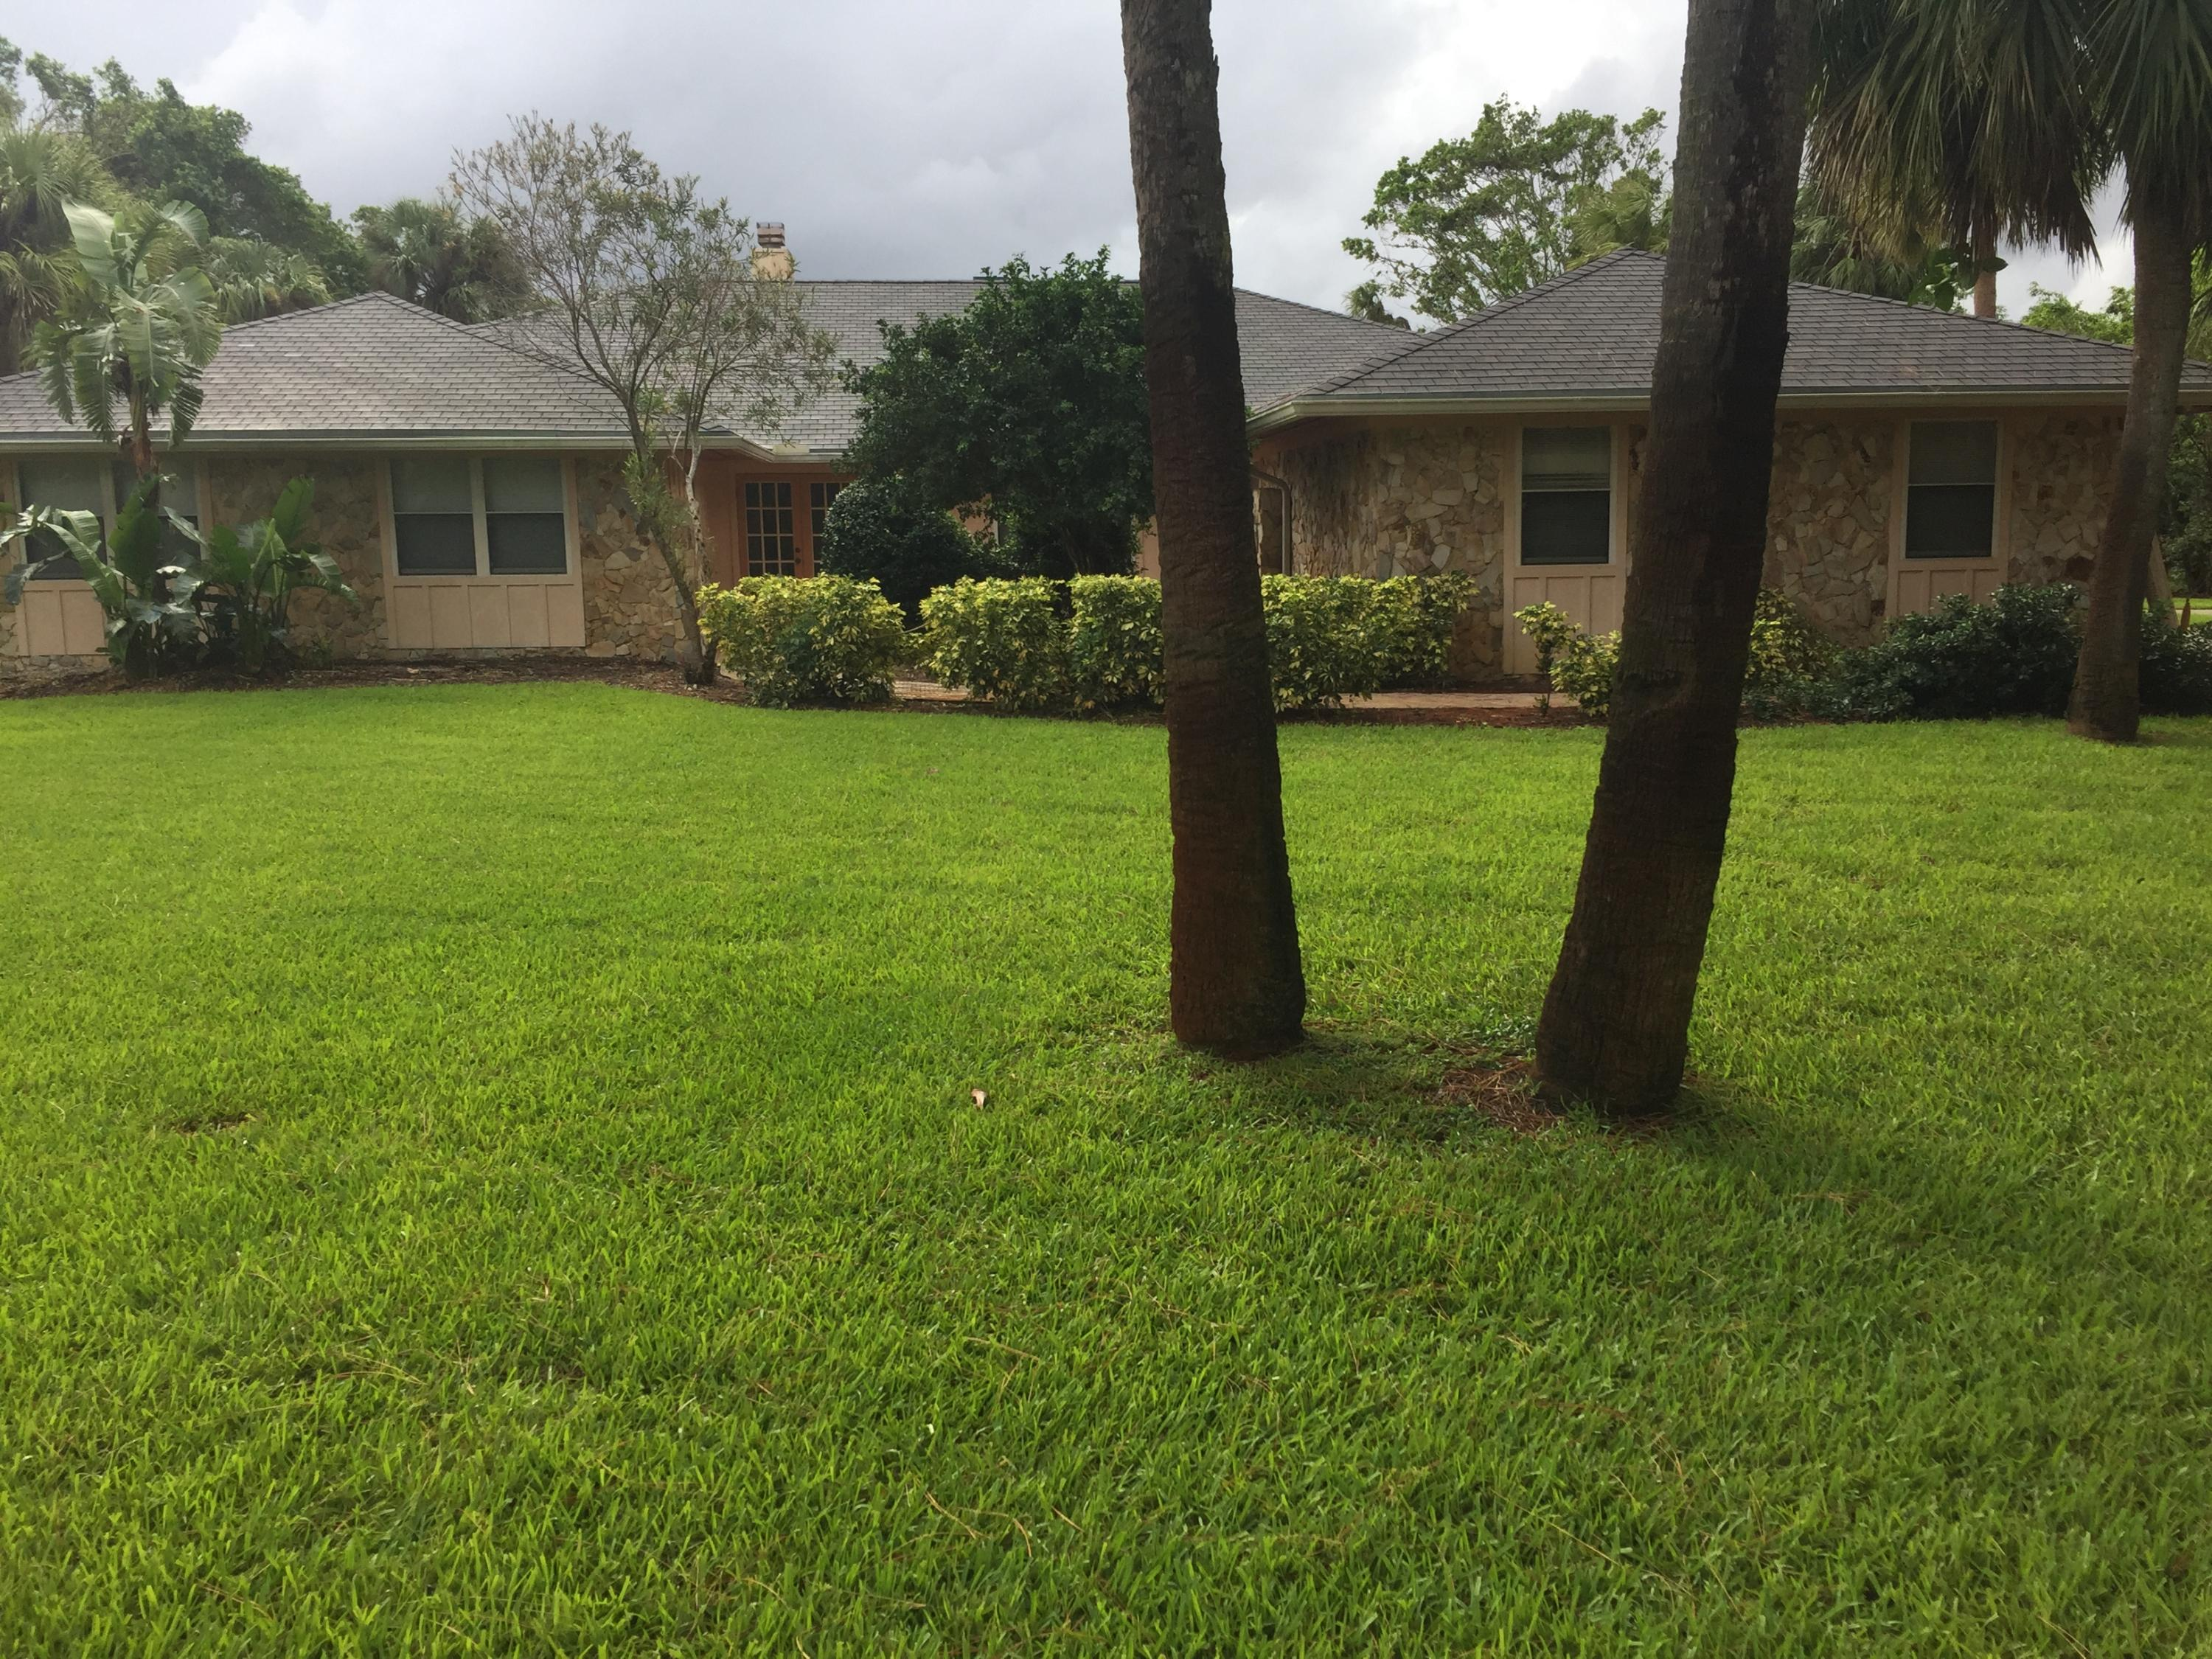 2520 Greenbriar Drive, Delray Beach, Florida 33445, 4 Bedrooms Bedrooms, ,3.1 BathroomsBathrooms,Single Family Detached,For Sale,Greenbriar,RX-10647194